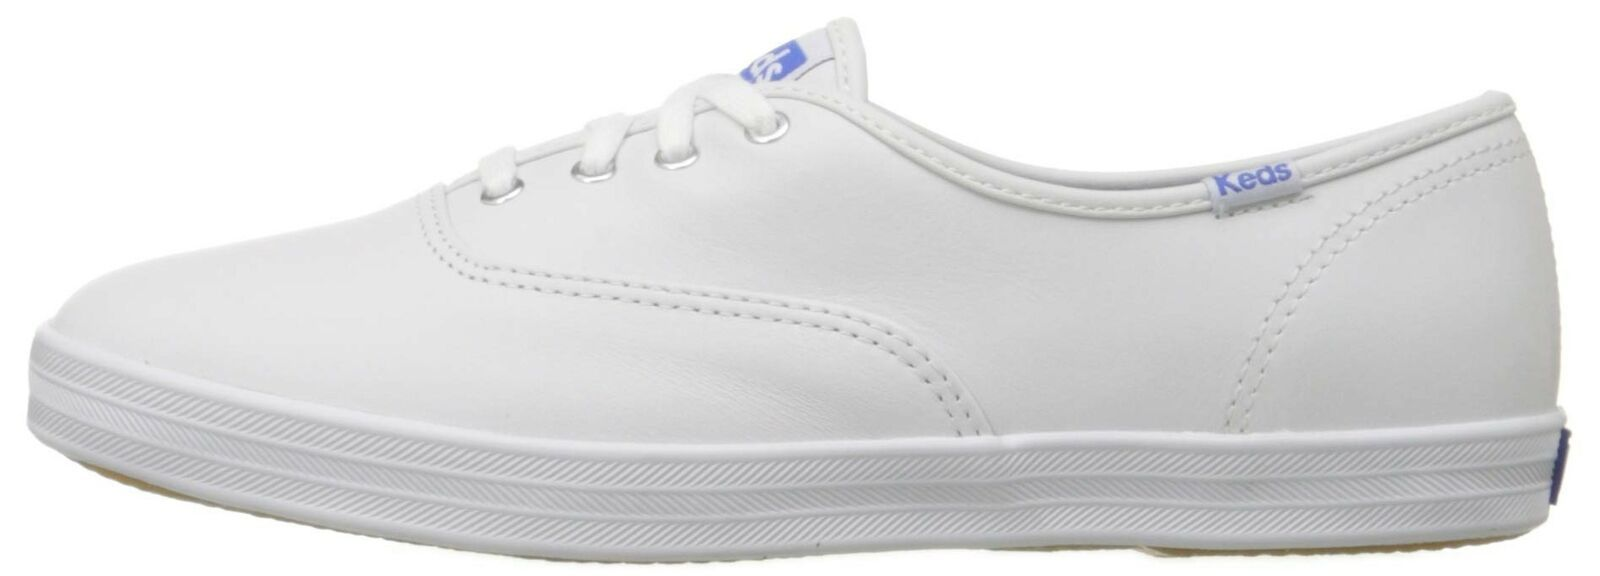 f32409007e9 Keds Champion Originals Leather Women and 15 similar items